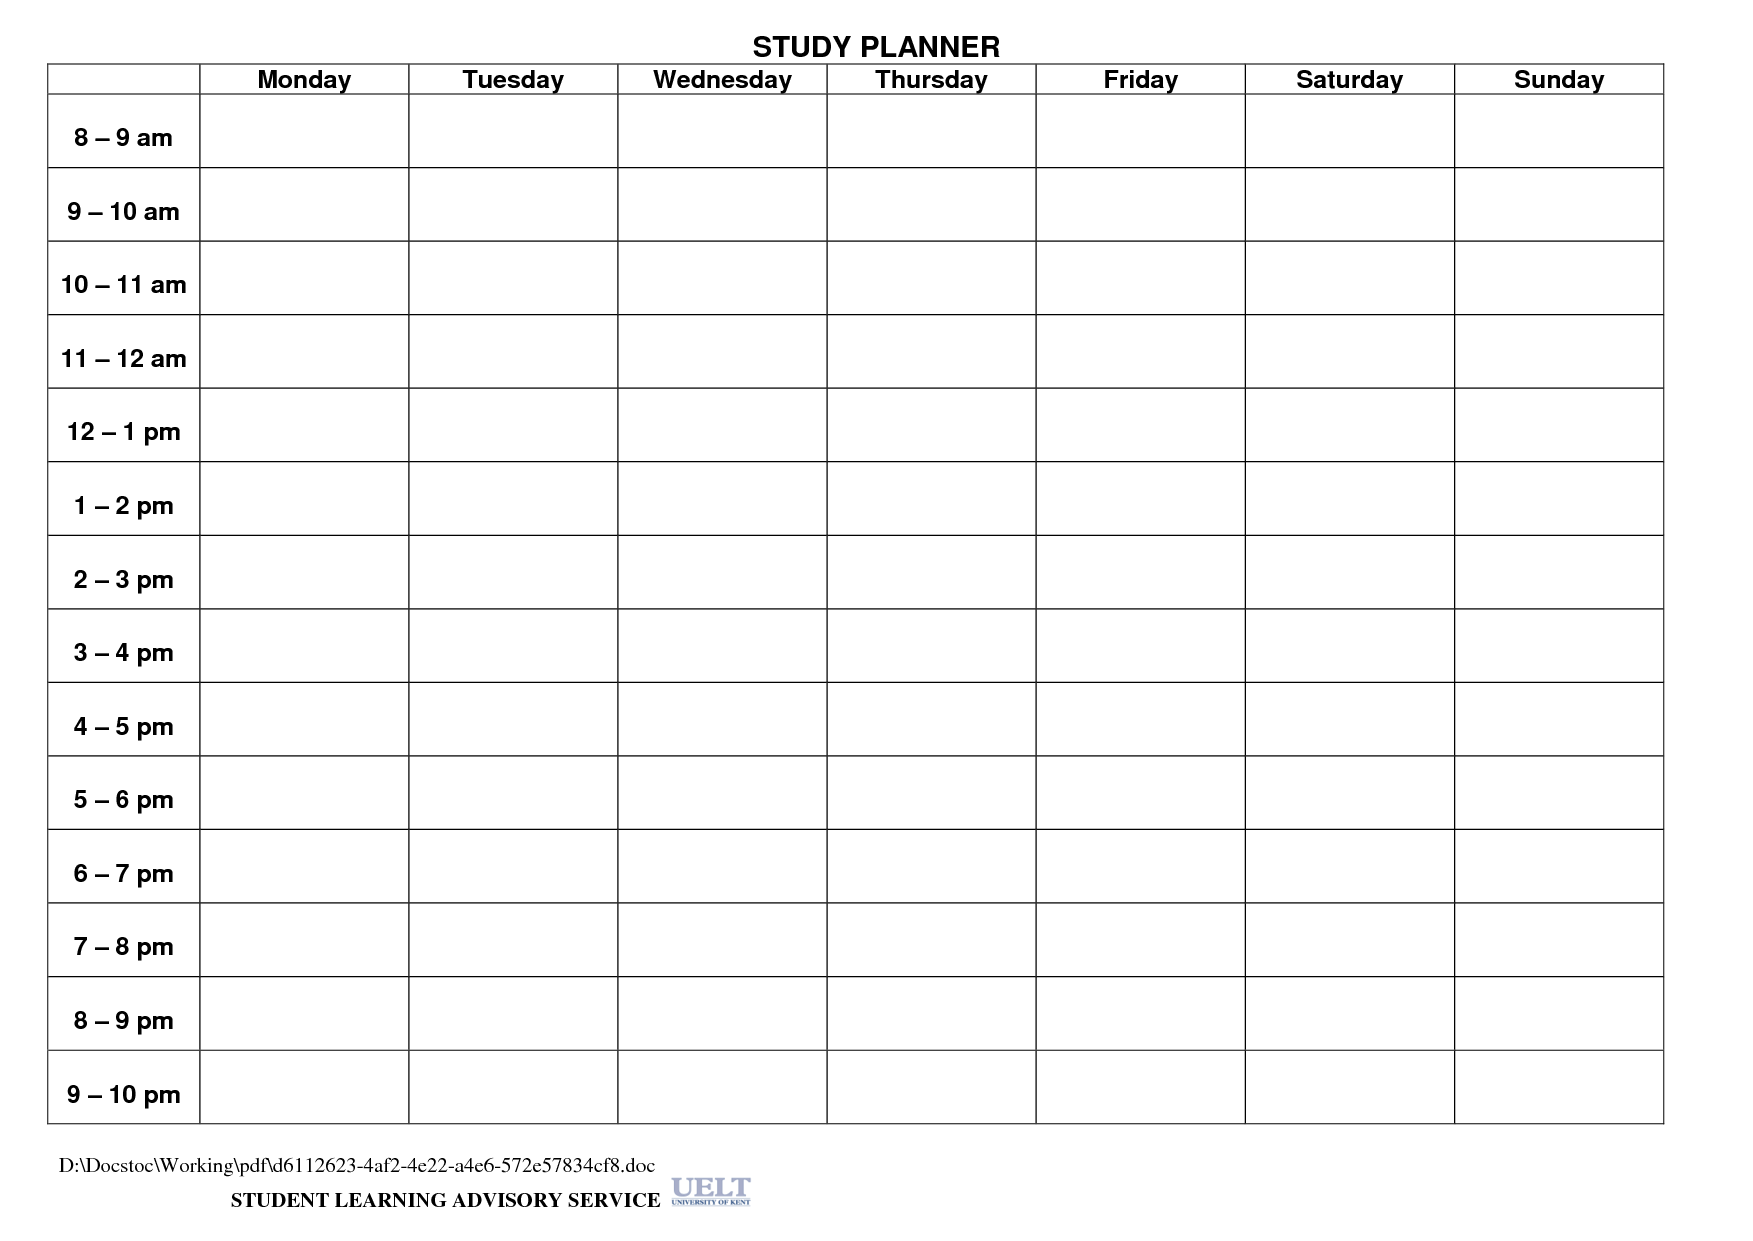 Study Planner Template Paper Crafty Printables – Daily Planning Template